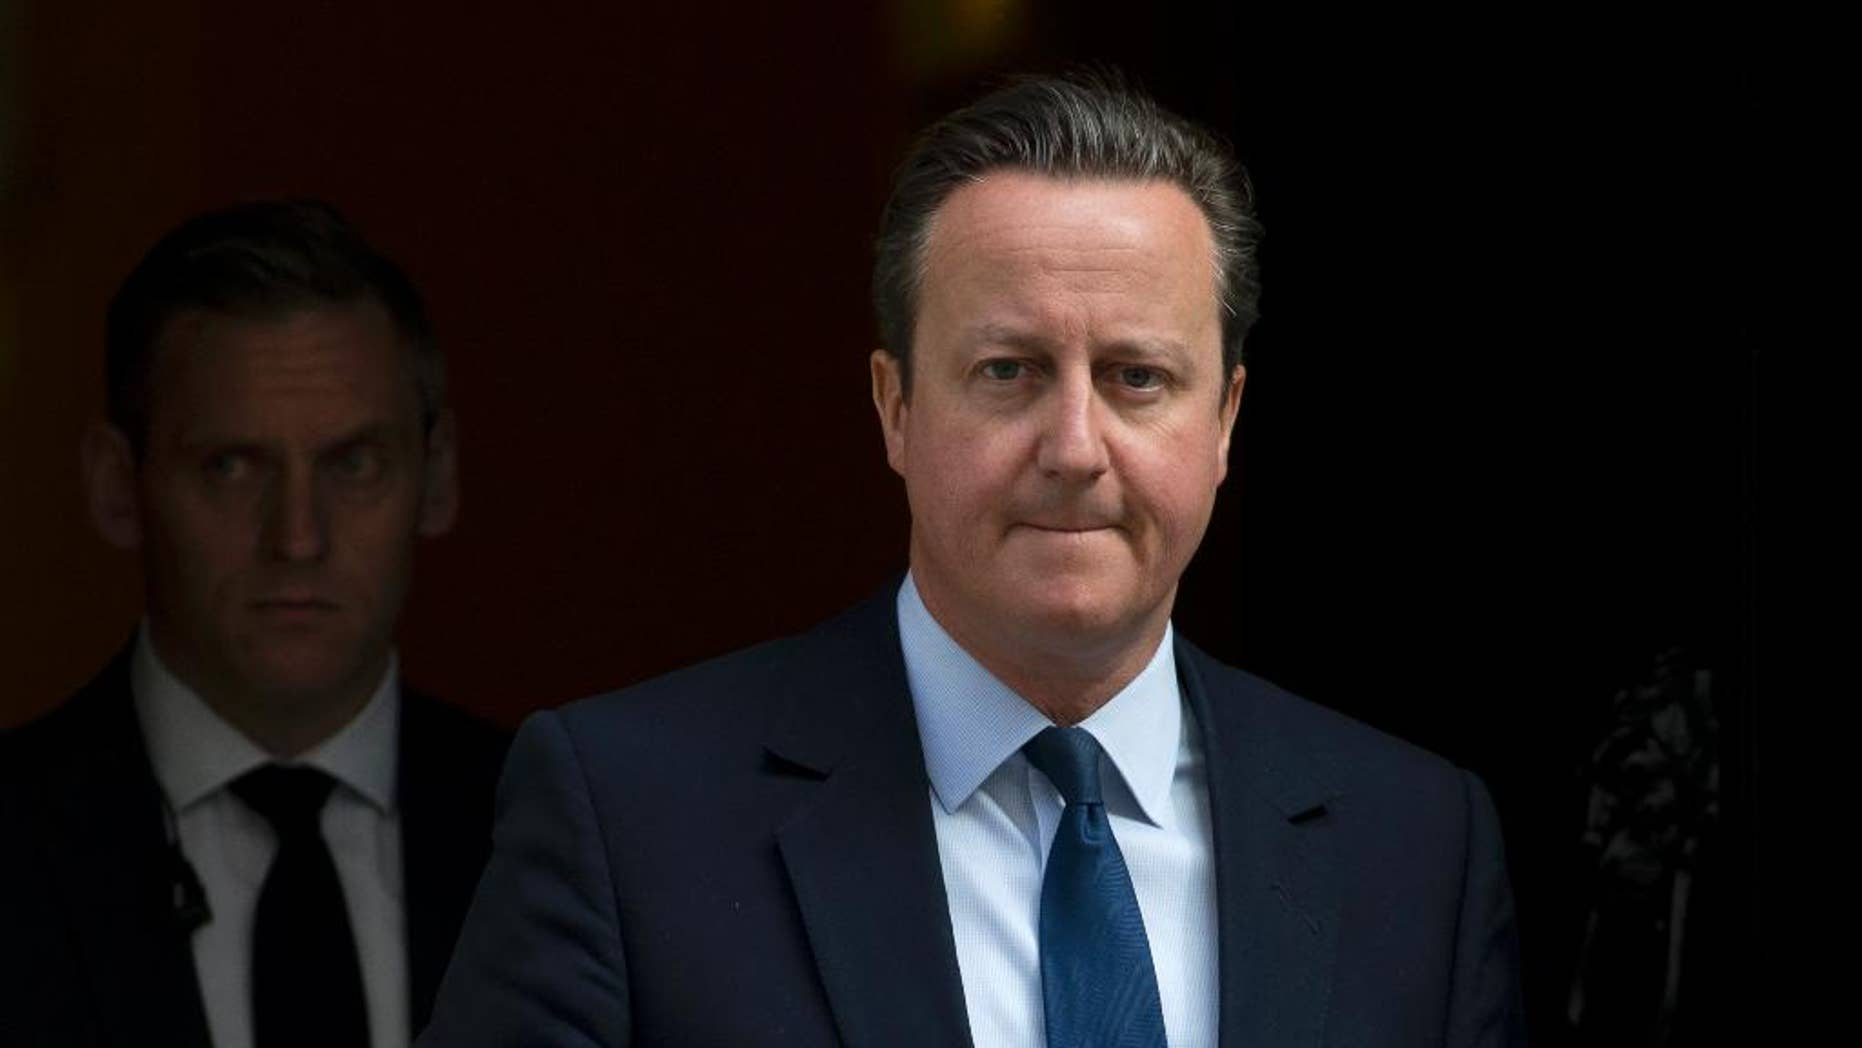 Britain's Prime Minister David Cameron leaves 10 Downing Street for the House of Commons to attend his weekly Prime Ministers Questions in London, Wednesday, April, 27, 2016. (AP Photo/Alastair Grant)